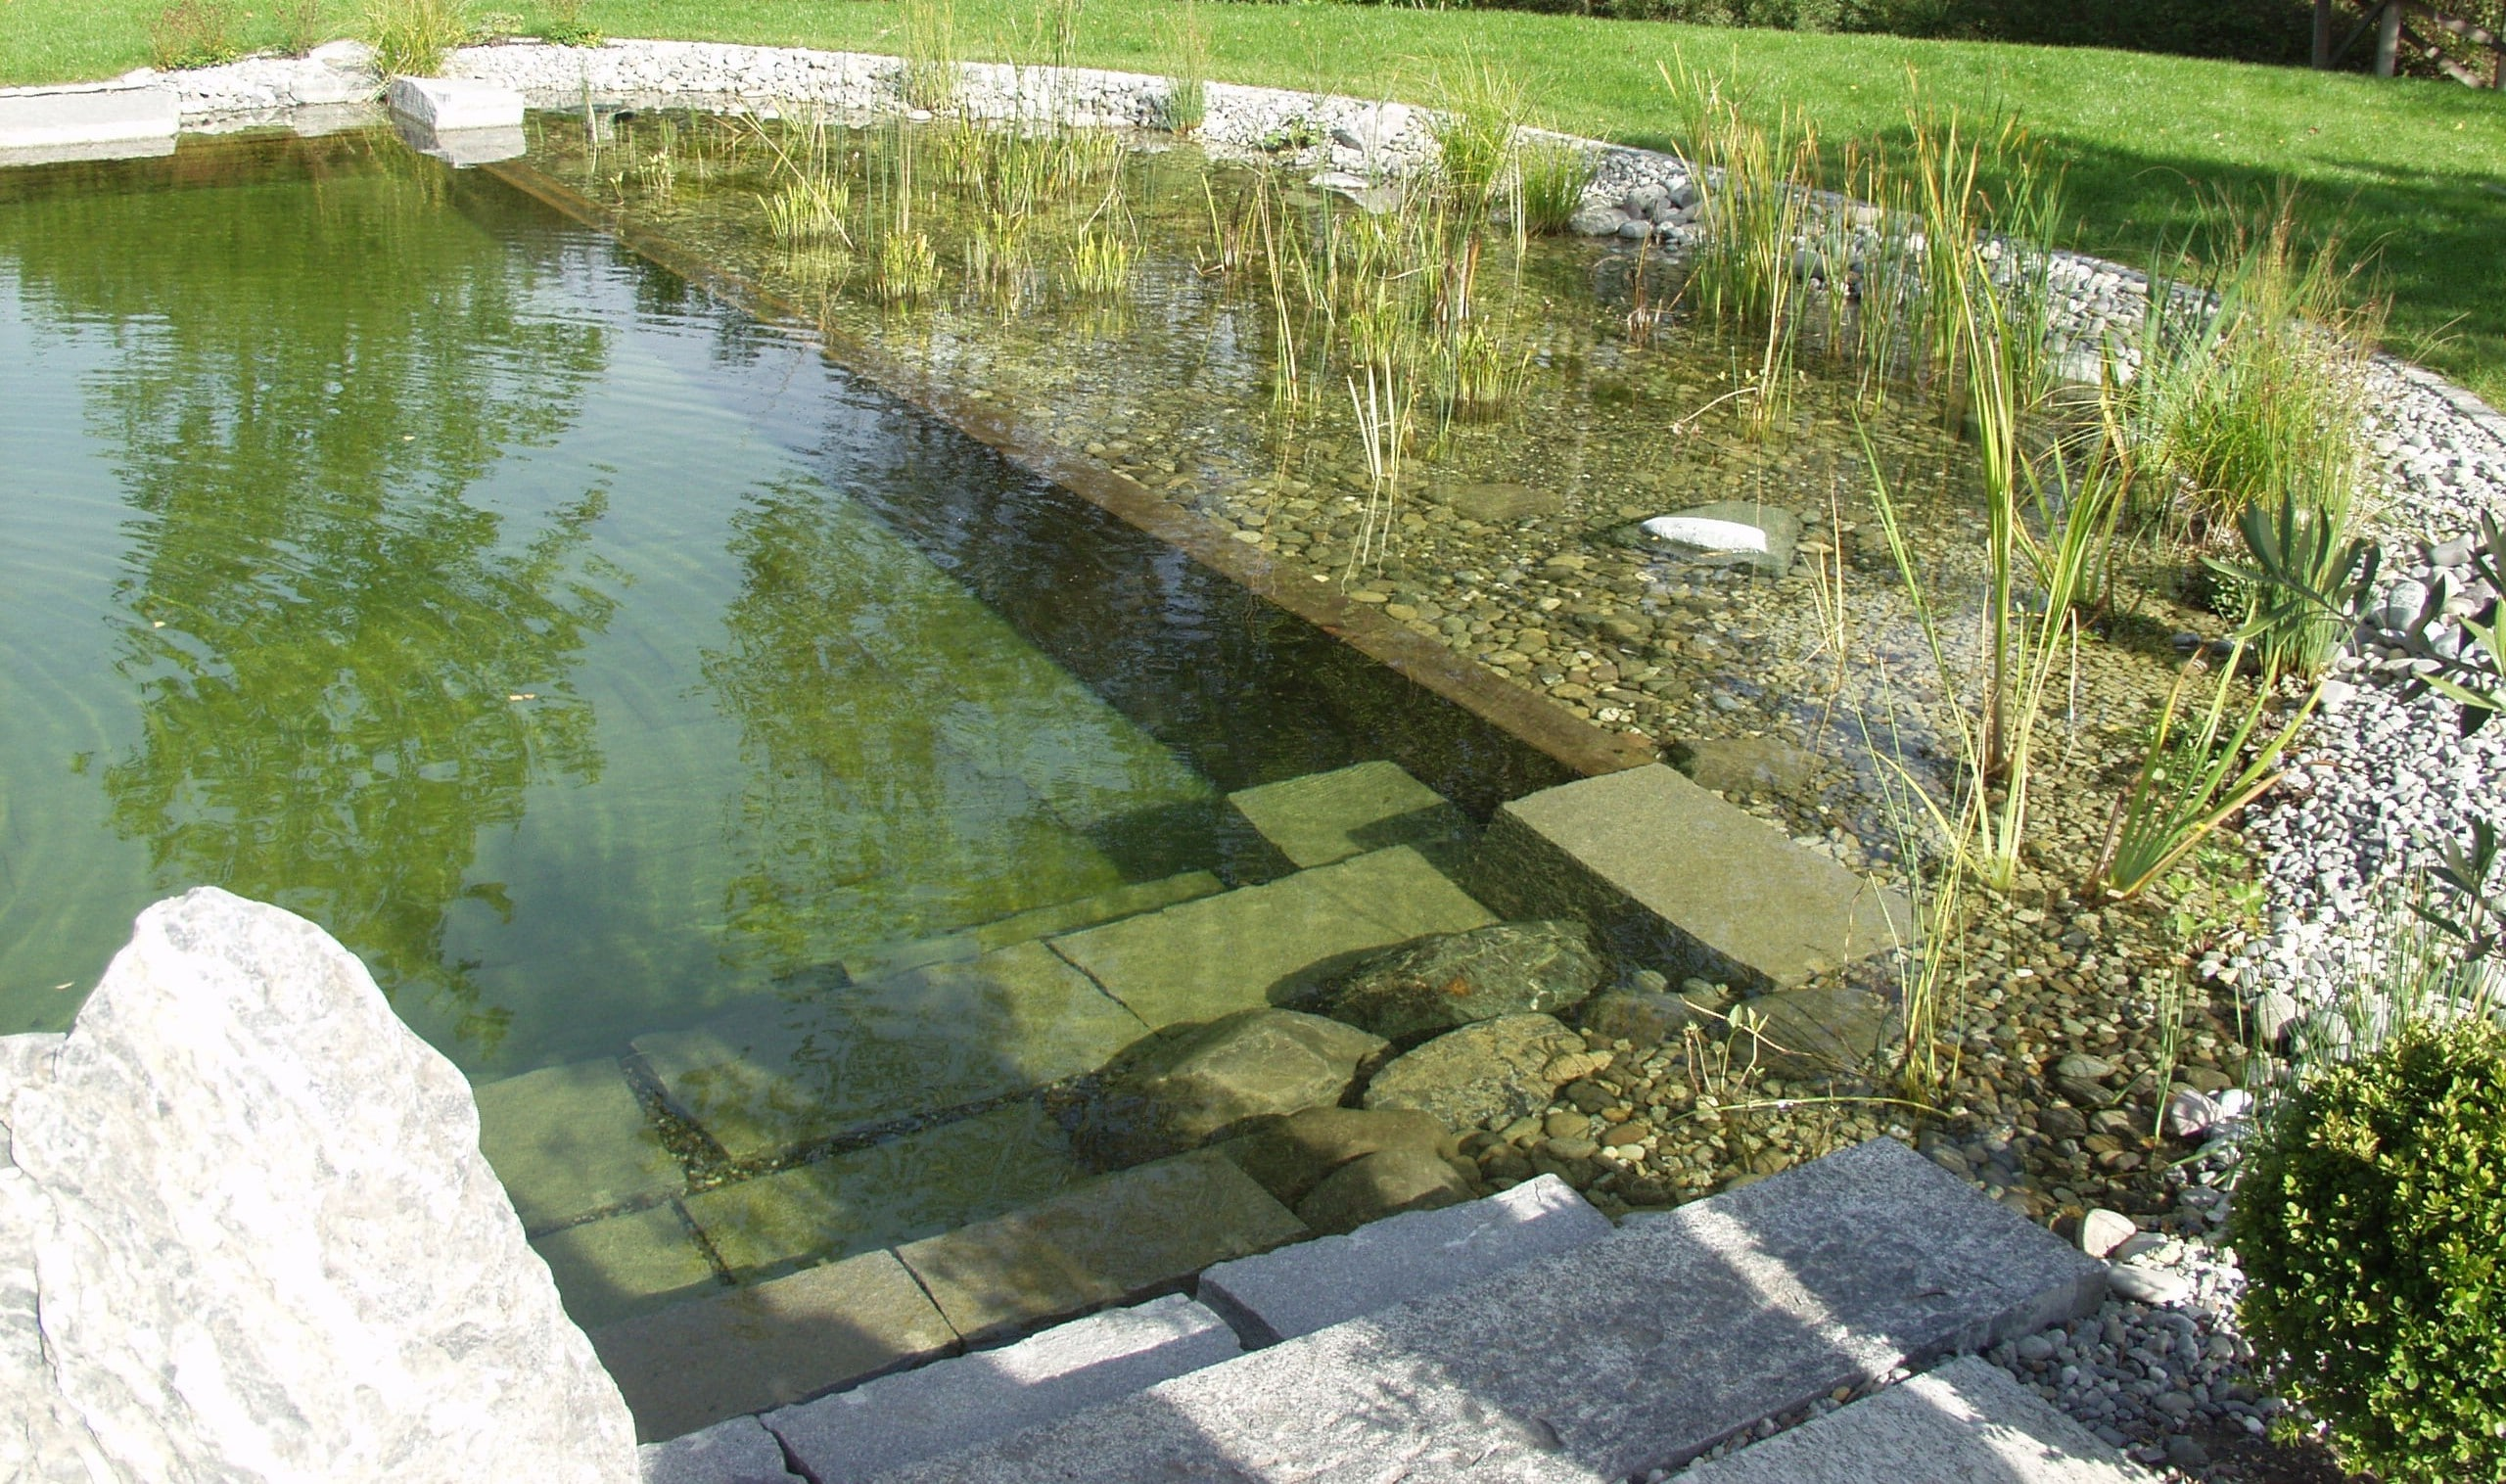 Como hacer una piscina natural en casa for Construccion piscinas naturales